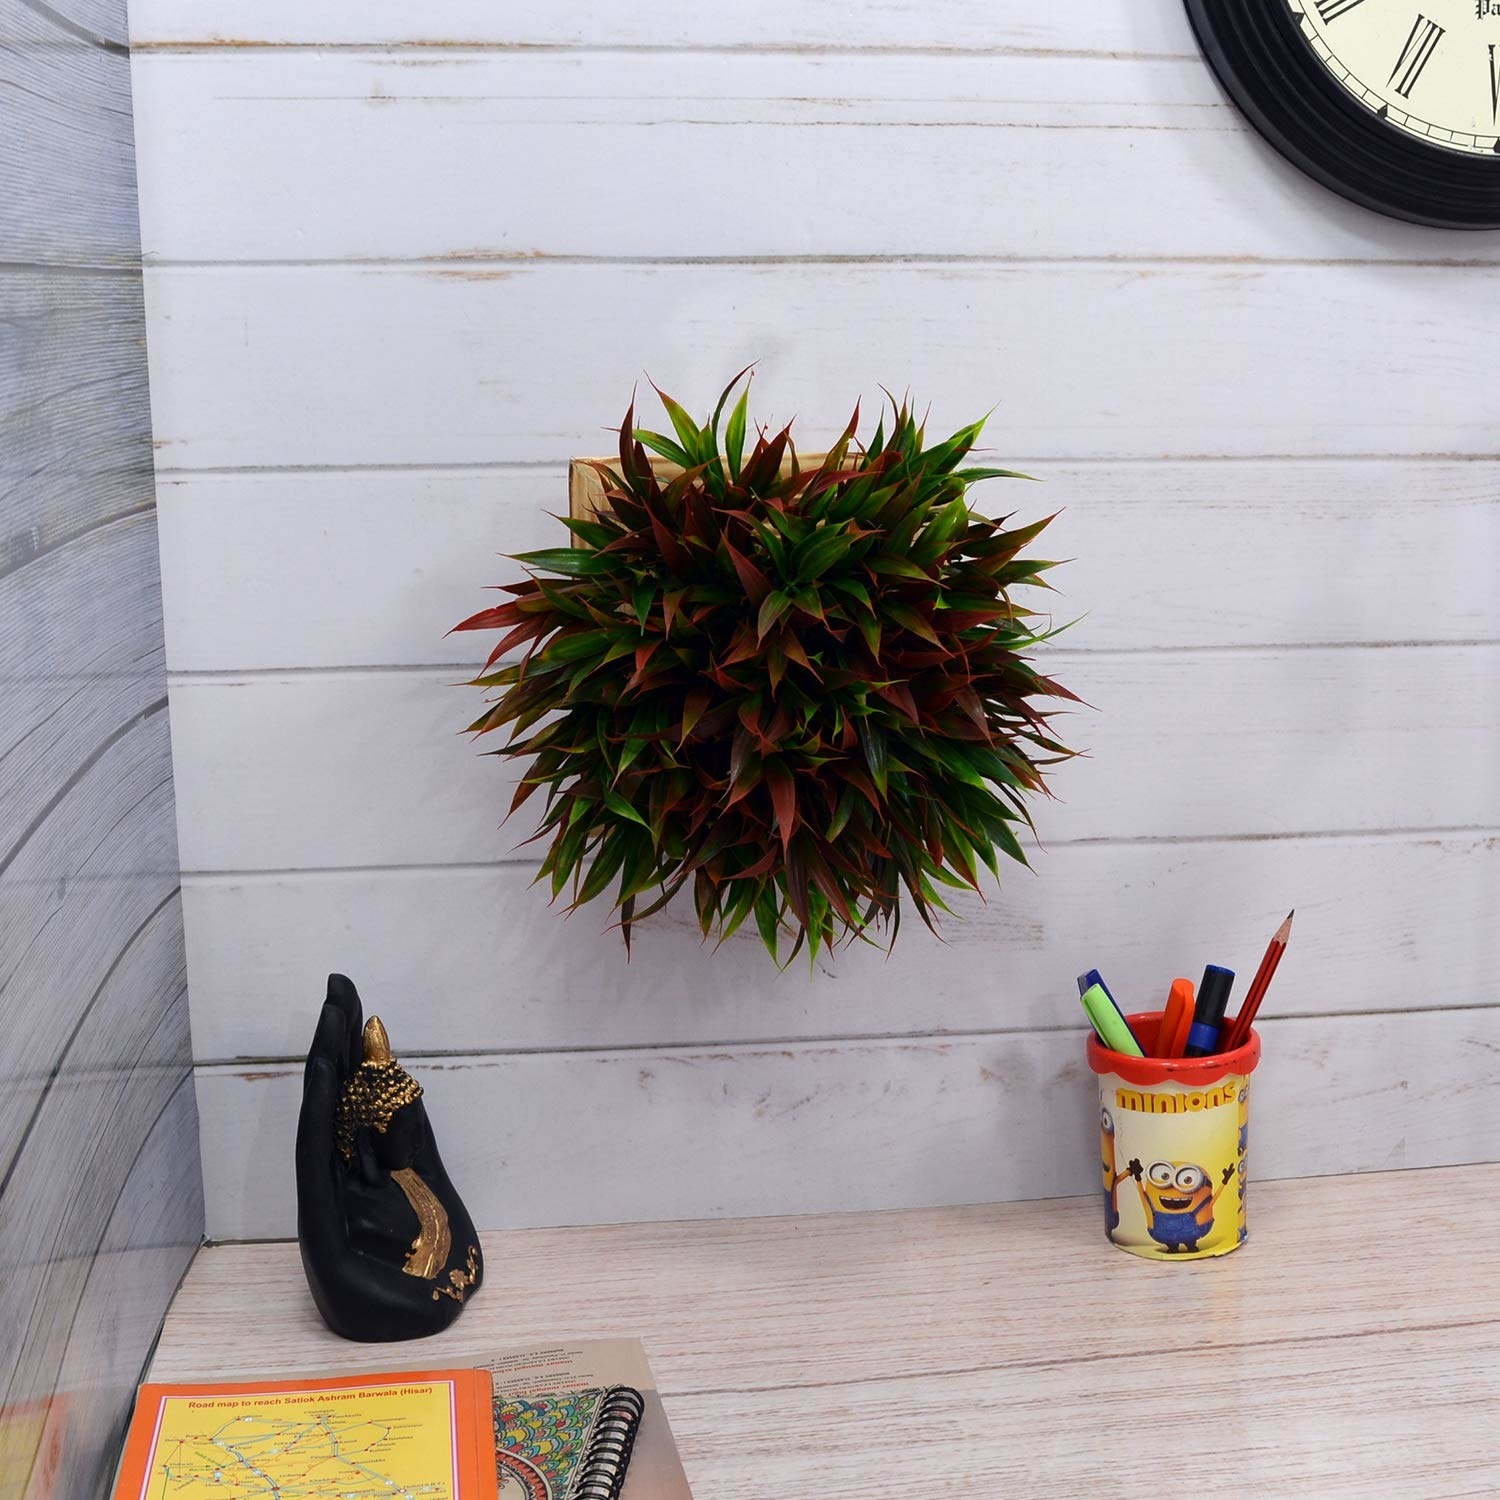 Plant attached from its bottom to the wall in front of a desk.